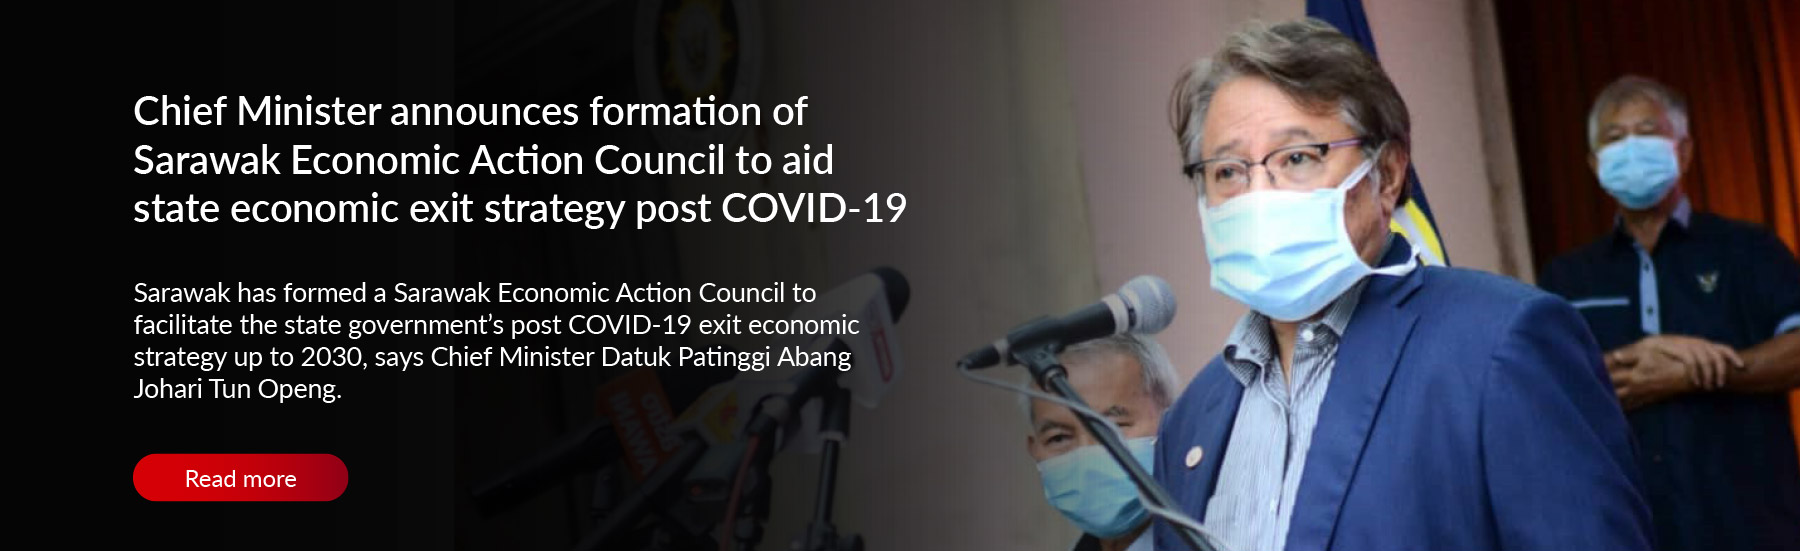 Chief Minister announces formation of Sarawak Economic Action Council to aid state economic exit strategy post COVID-19